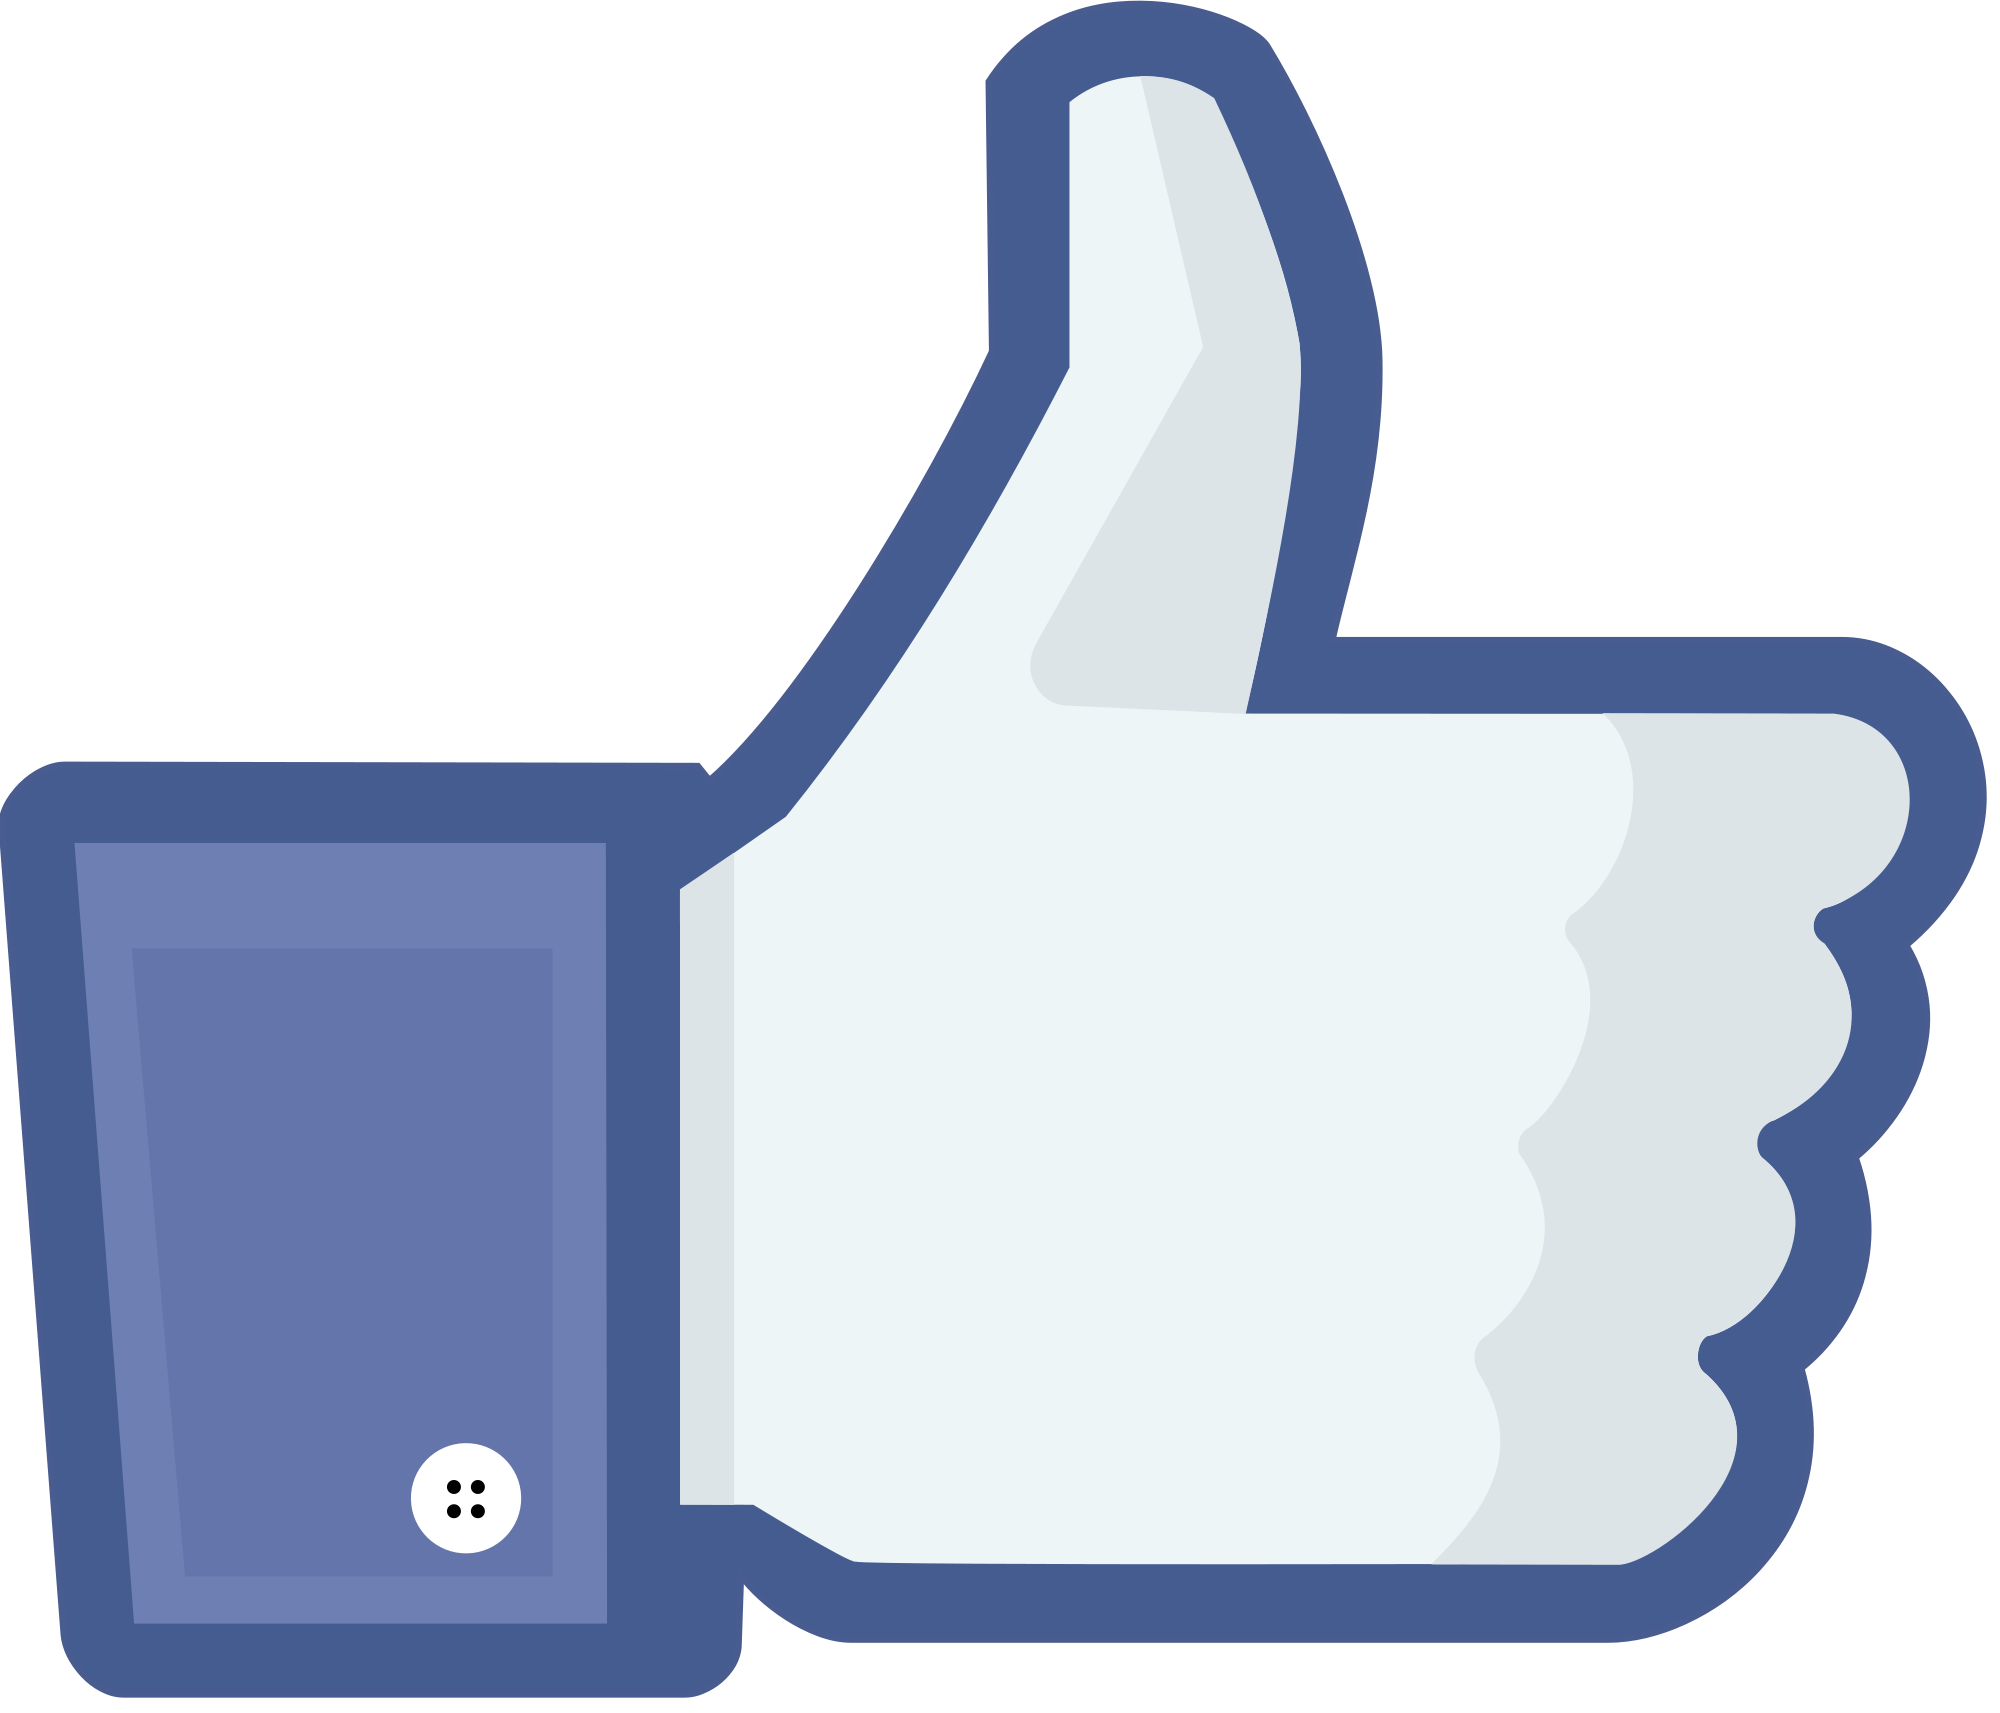 Download Facebook Like Clipart HQ PNG Image.